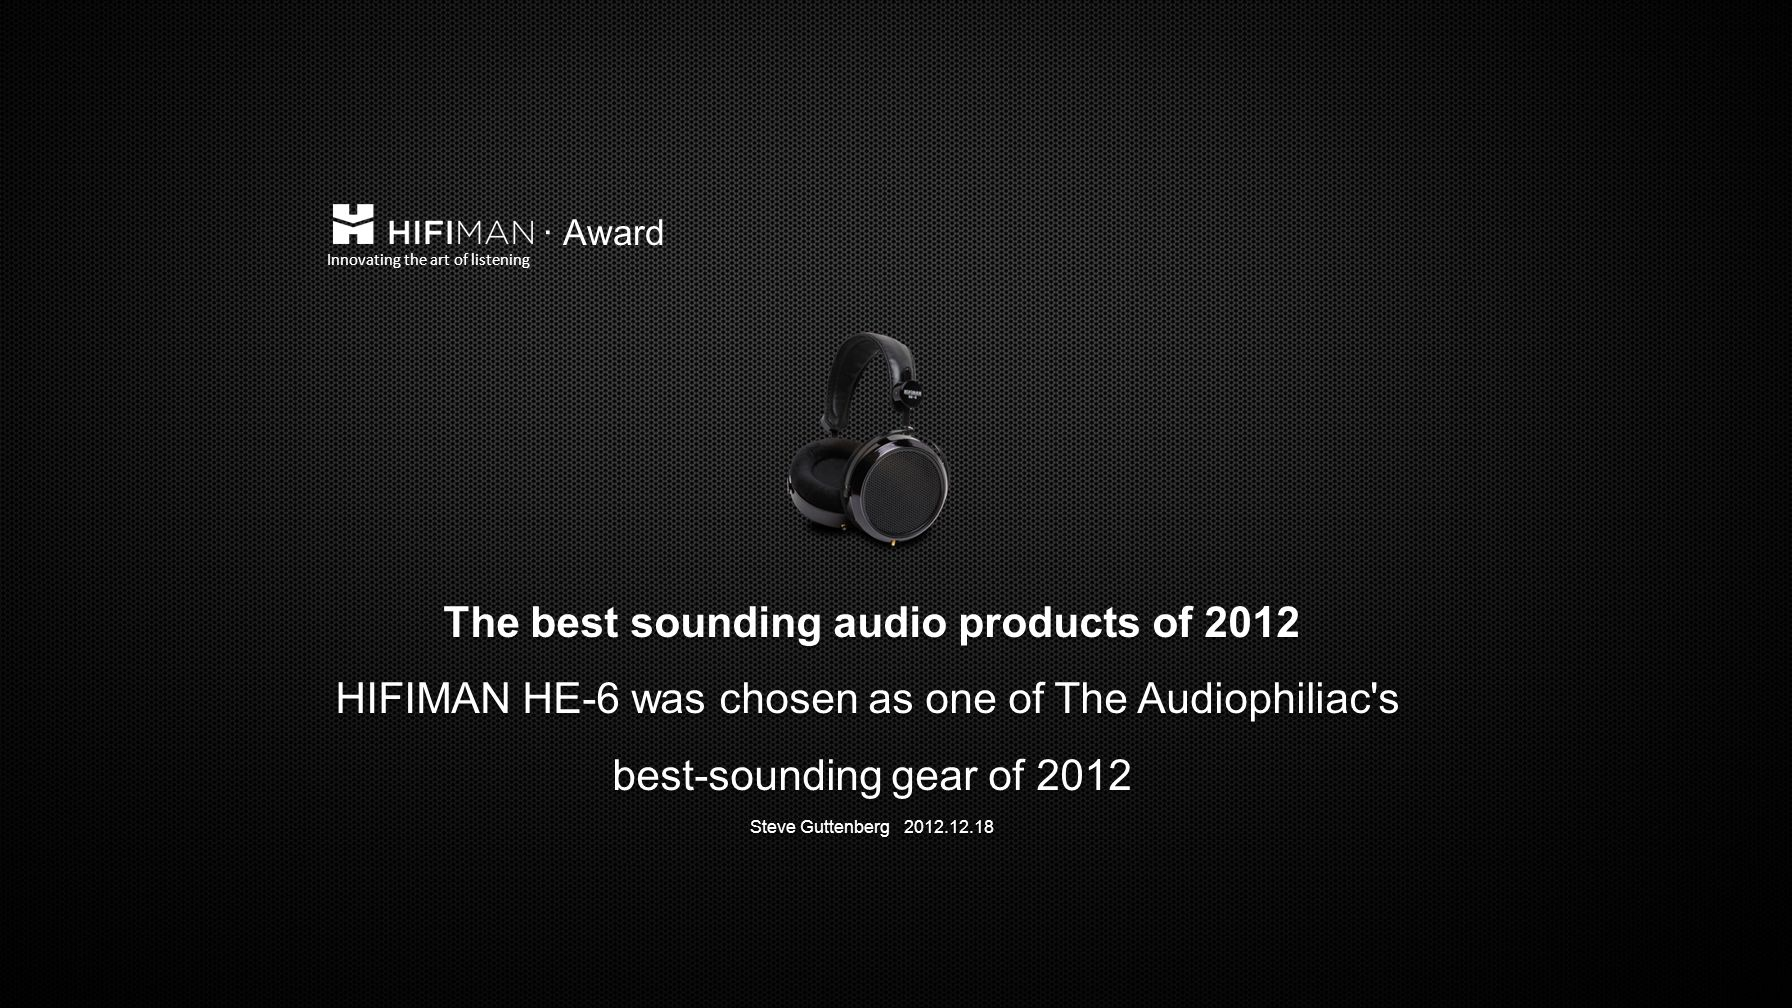 The best sounding audio products of 2012 HIFIMAN HE-6 was chosen as one of The Audiophiliac s best-sounding gear of 2012 Steve Guttenberg 2012.12.18 The best sounding audio products of 2012 HIFIMAN HE-6 was chosen as one of The Audiophiliac s best-sounding gear of 2012 Steve Guttenberg 2012.12.18 Innovating the art of listening